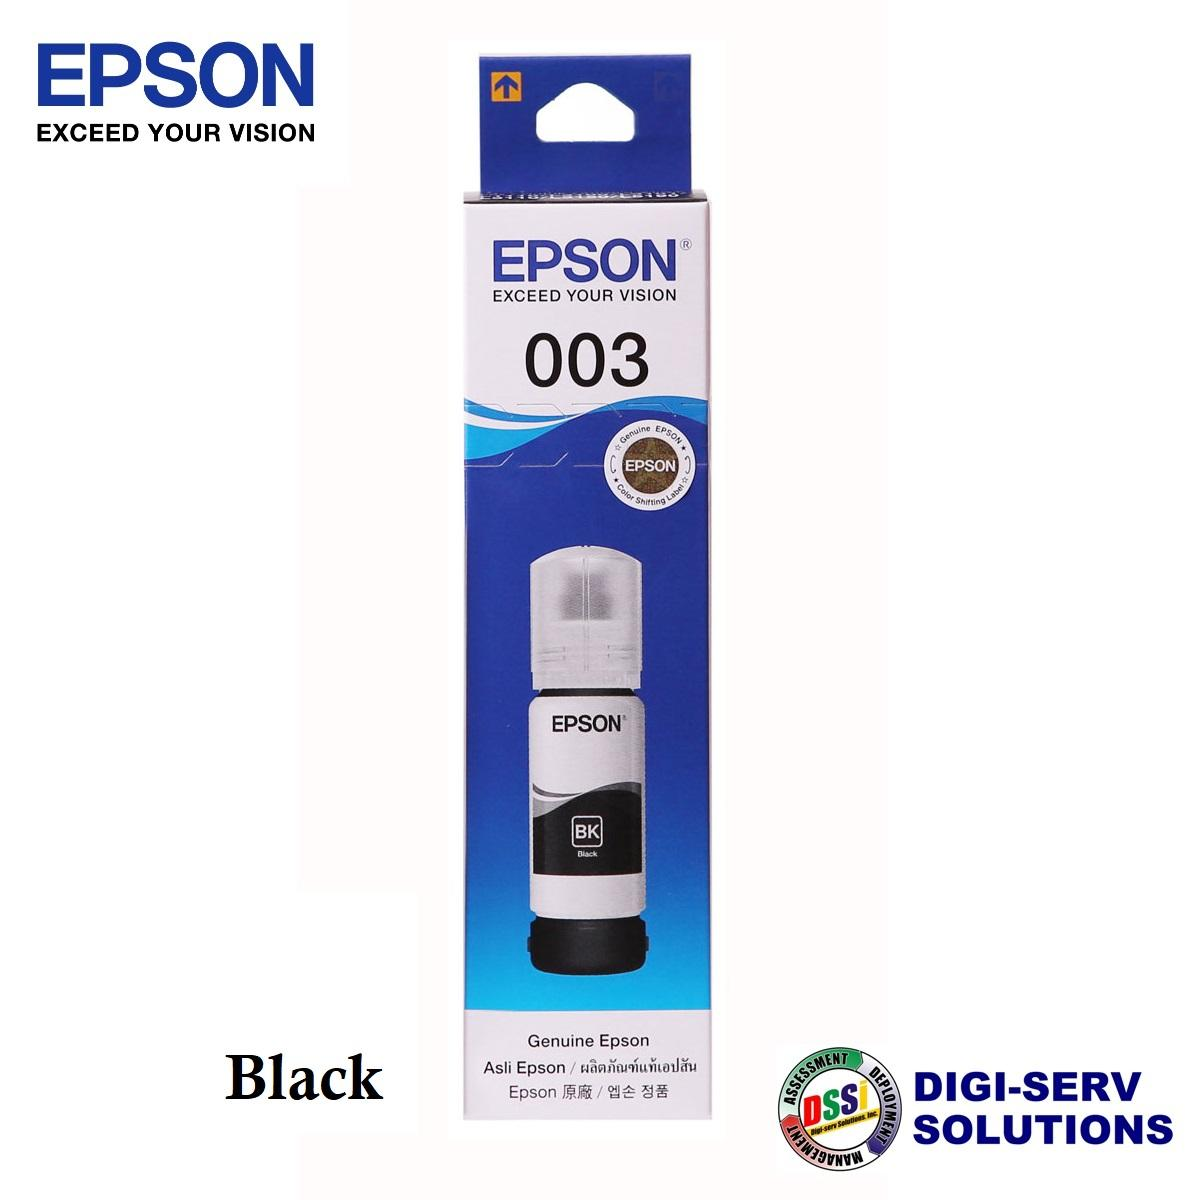 epson stylus photo 1500w adjustment program l120